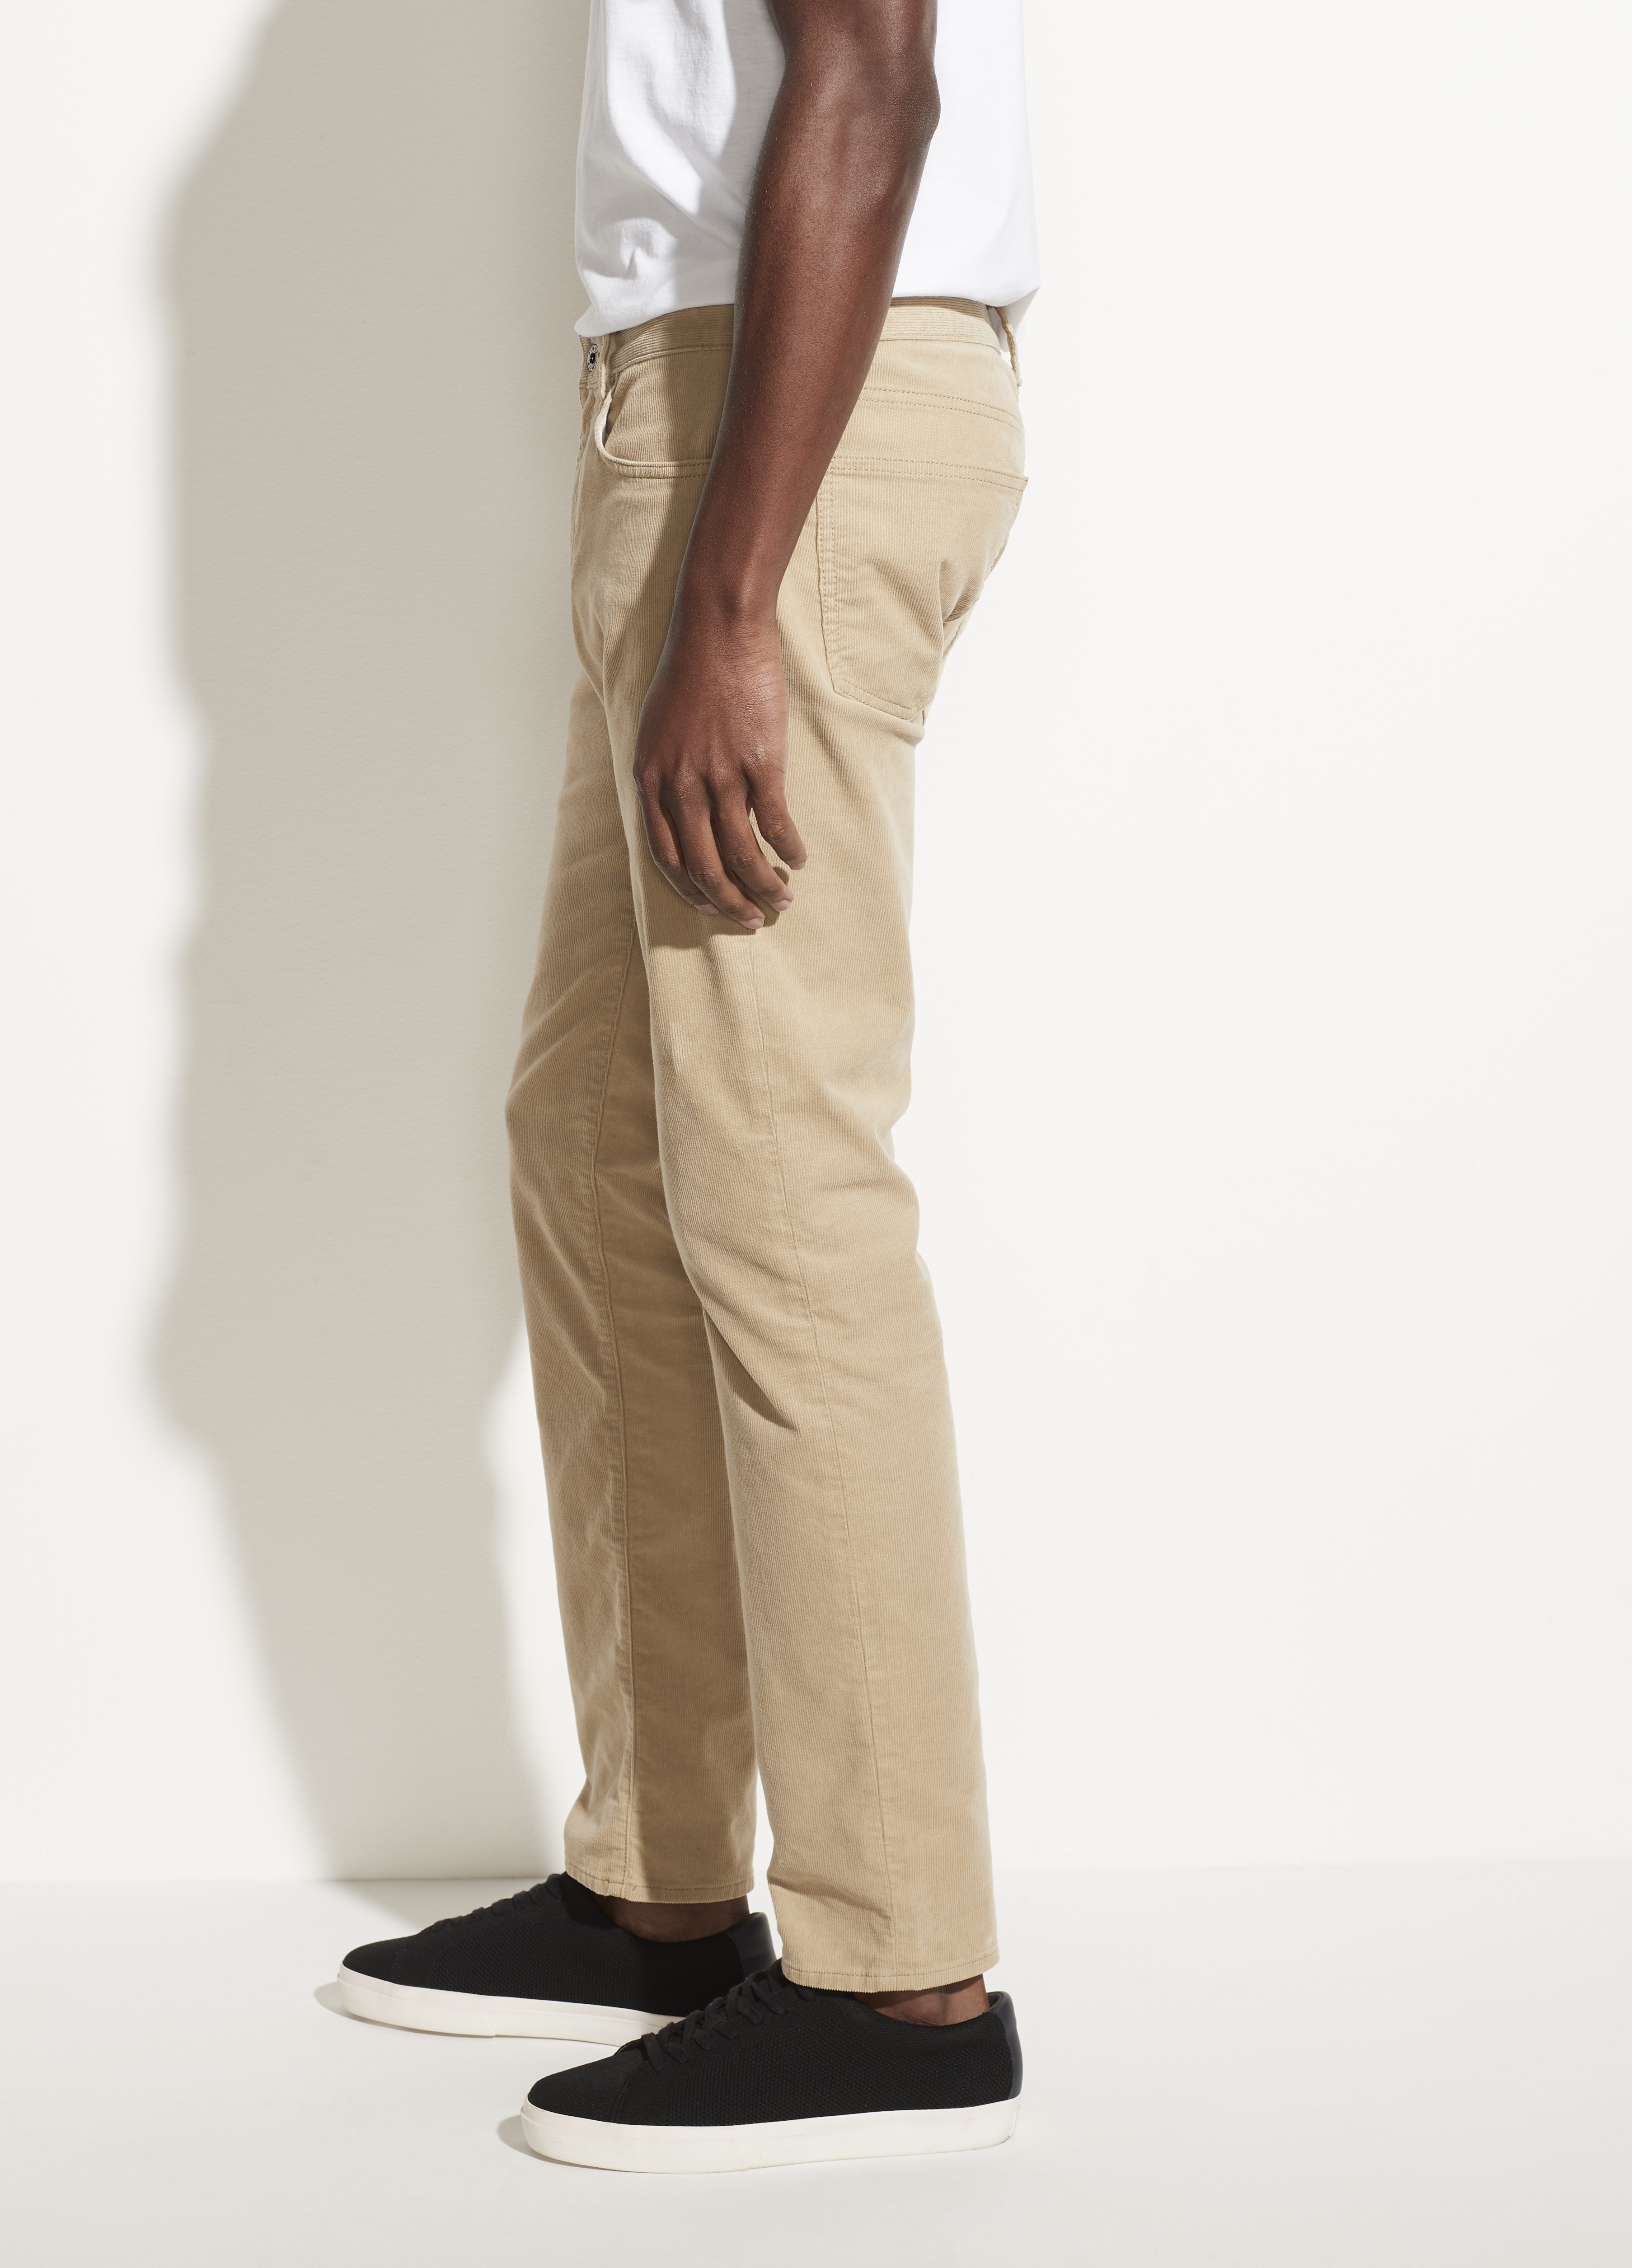 The Corduroy 5 Pocket Pant